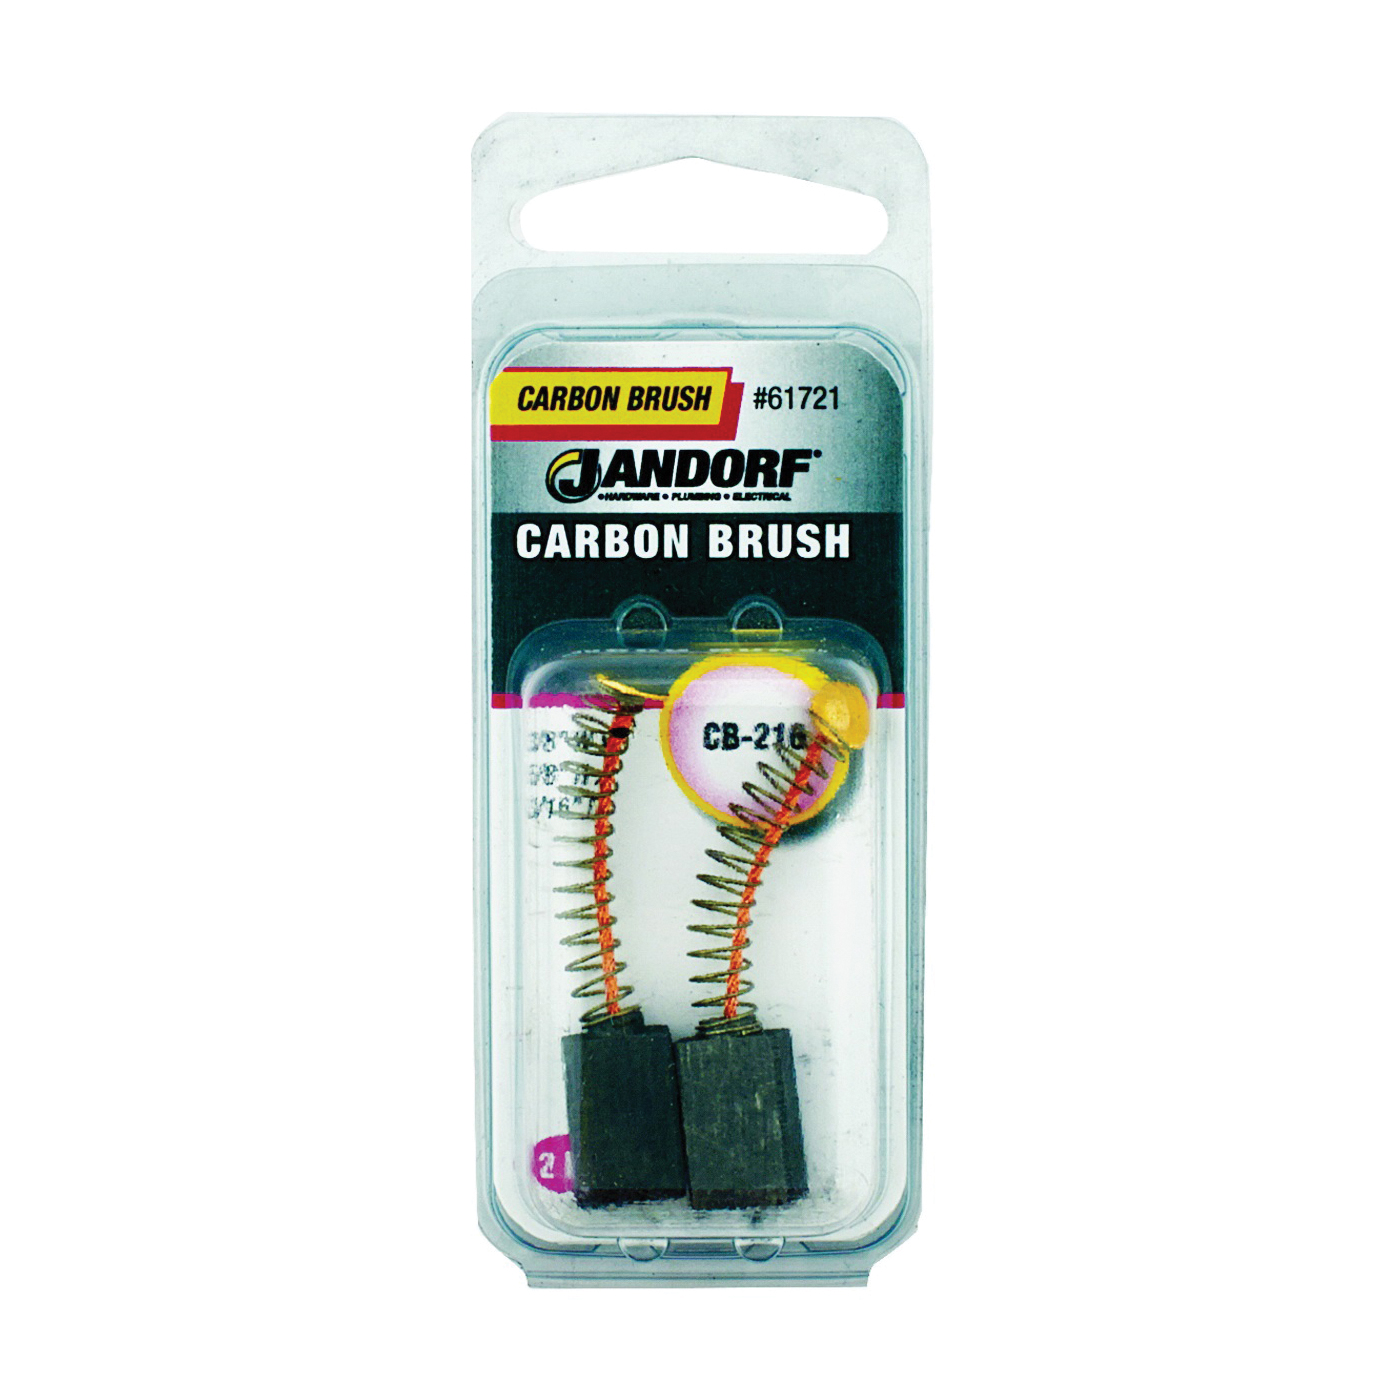 Picture of Jandorf 61721 Carbon Brush, 2 -Piece, Pack